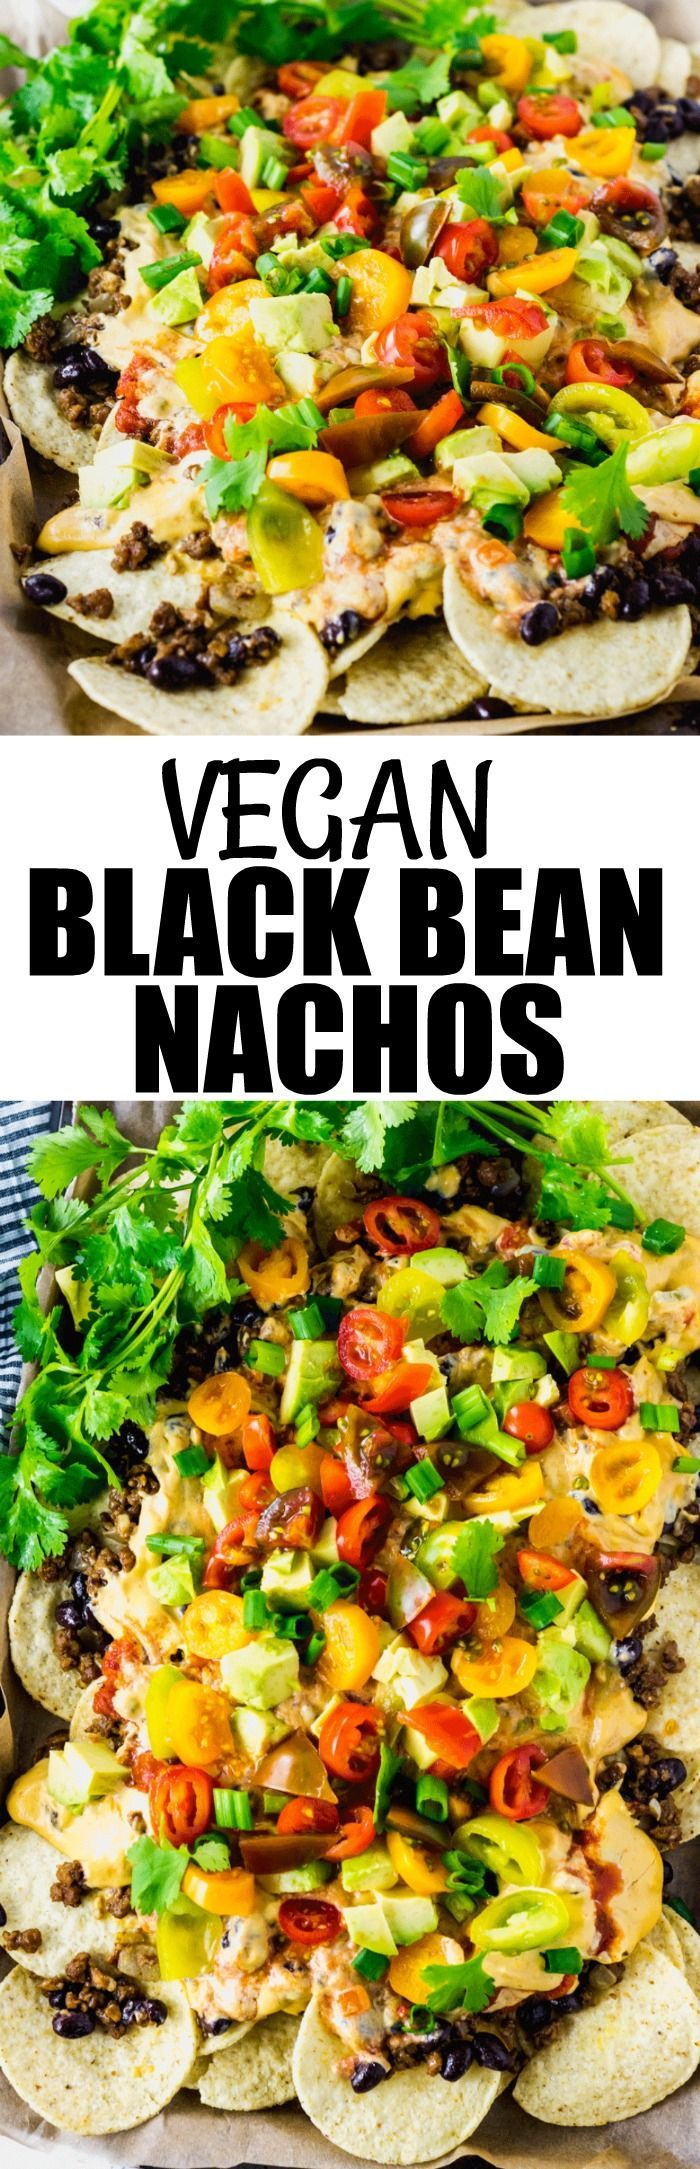 Vegan Black Bean Nachos #superbowlparty #superbowl #gamedayfood  #glutenfreerecipes